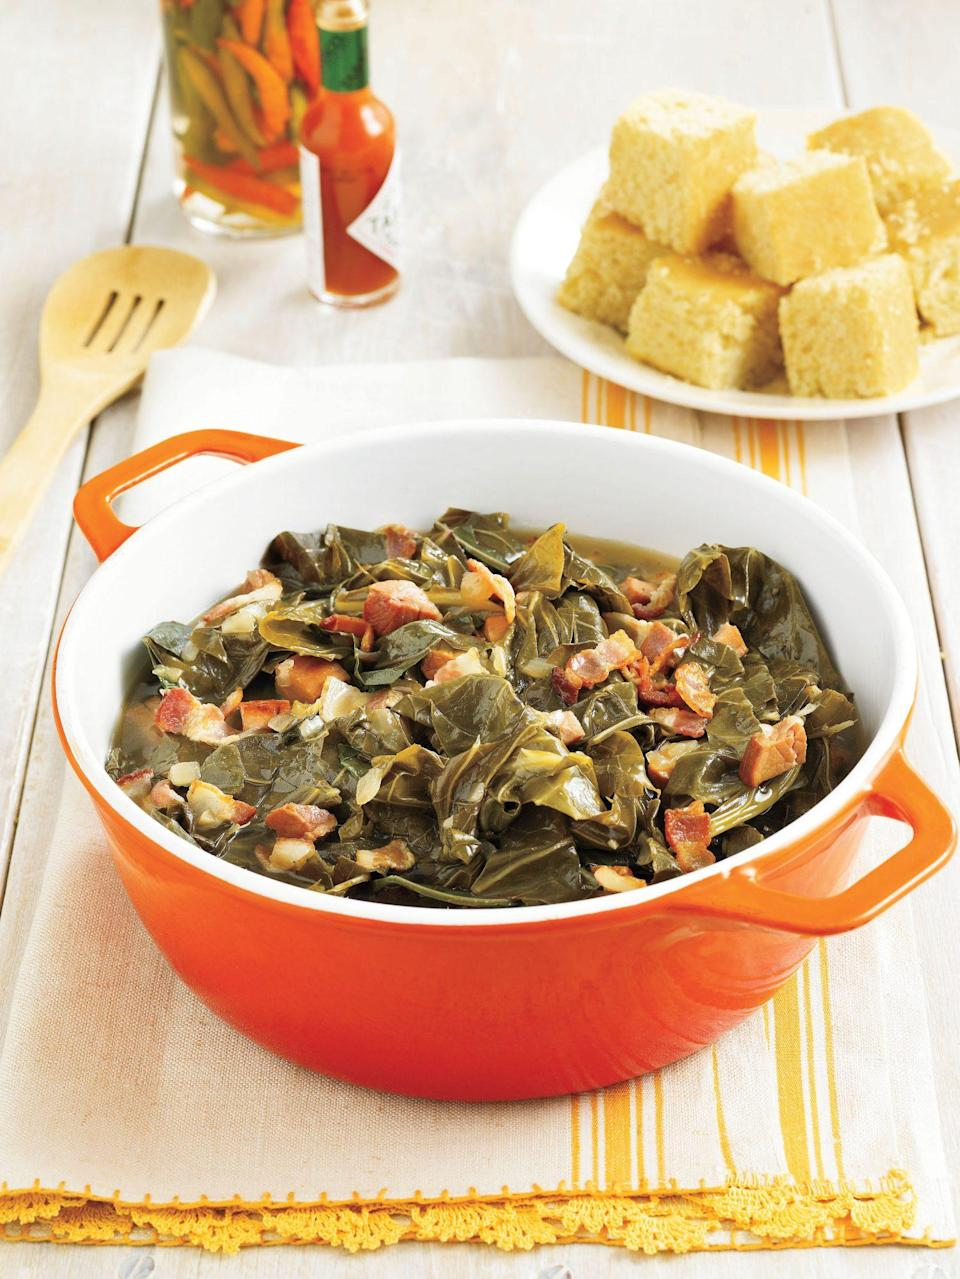 """<p><strong>Recipe:</strong> <a href=""""https://www.southernliving.com/recipes/southern-collard-greens"""" rel=""""nofollow noopener"""" target=""""_blank"""" data-ylk=""""slk:Southern-Style Collard Greens"""" class=""""link rapid-noclick-resp"""">Southern-Style Collard Greens</a></p> <p>If you're really looking to turn your next cookout into a feast, prepare a heaping portion of collards to sneak in something green on guests' plates.</p>"""